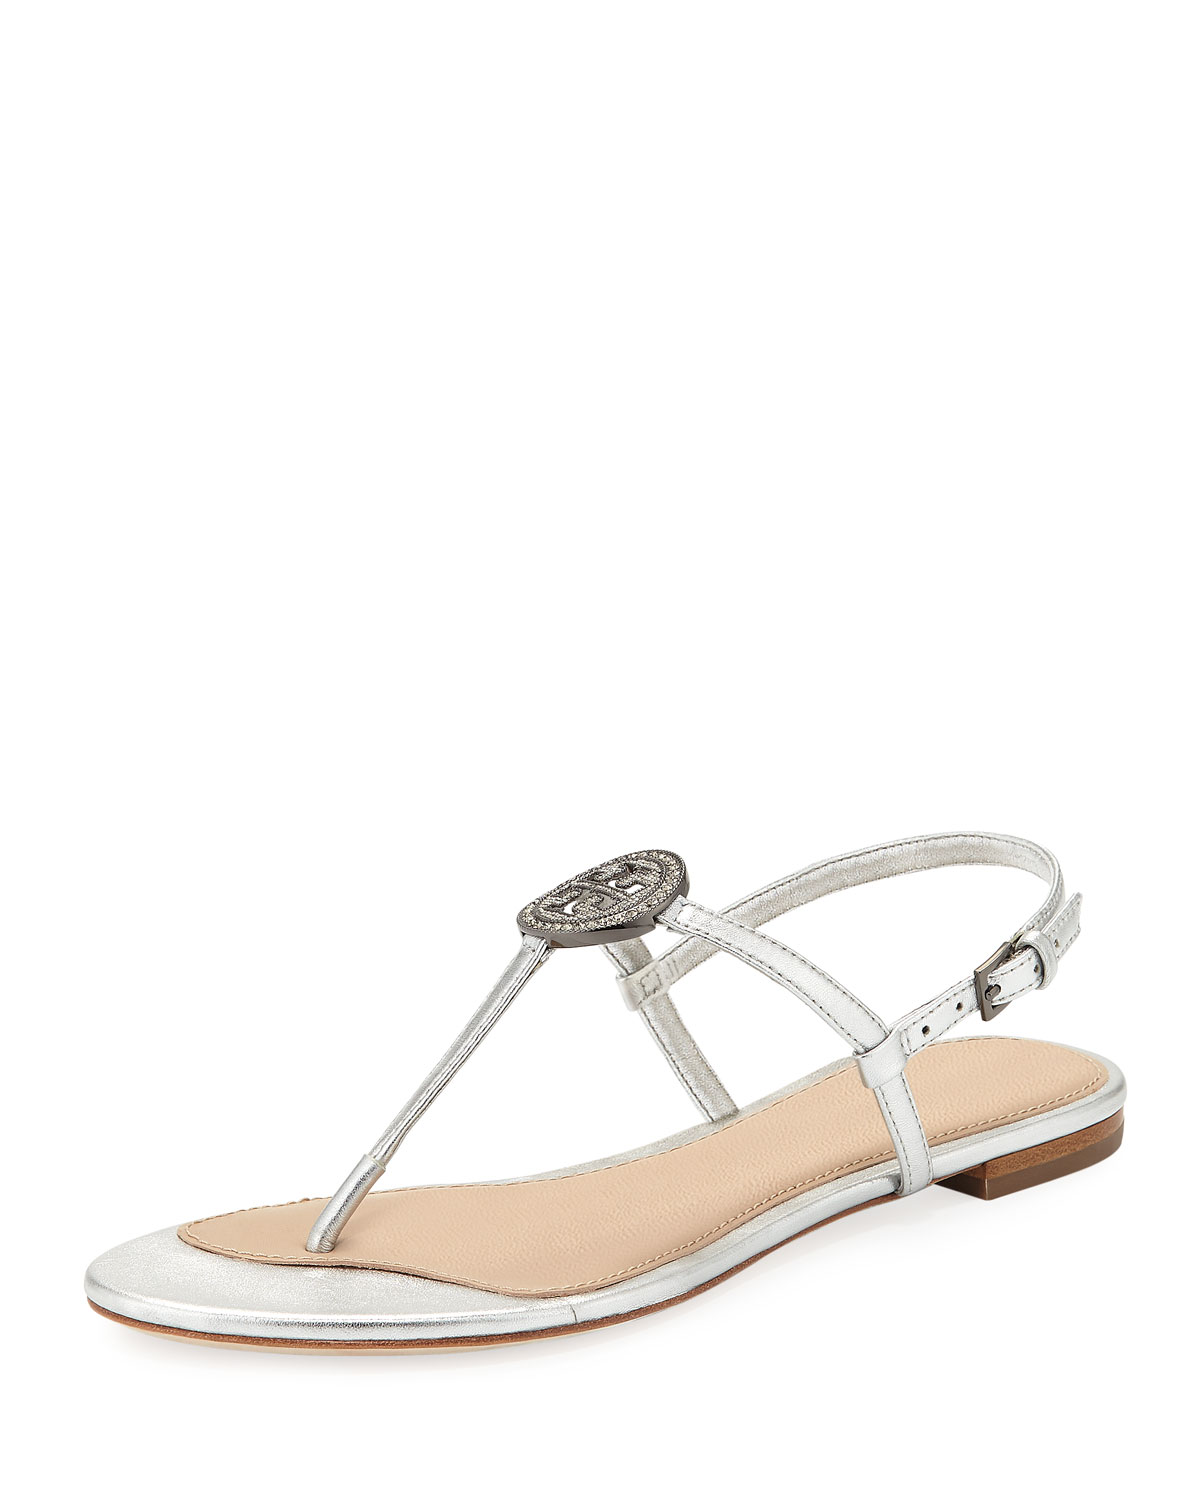 3334452cb344 Tory Burch Liana Metallic Leather Flat Sandal